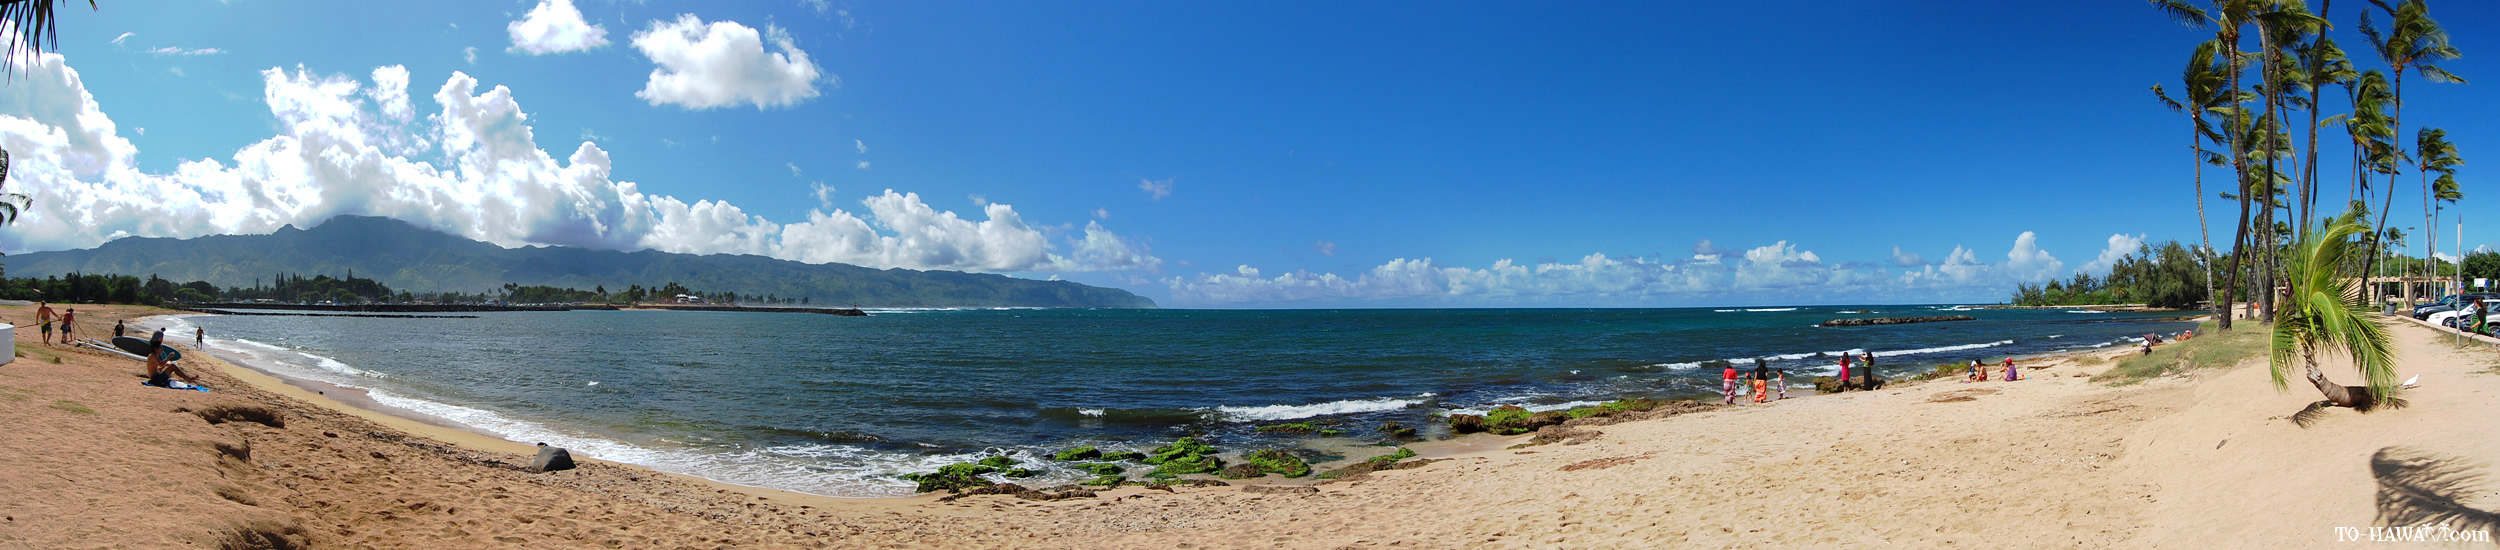 Index Of Oahu Beaches Images Haleiwabeach2 Pano